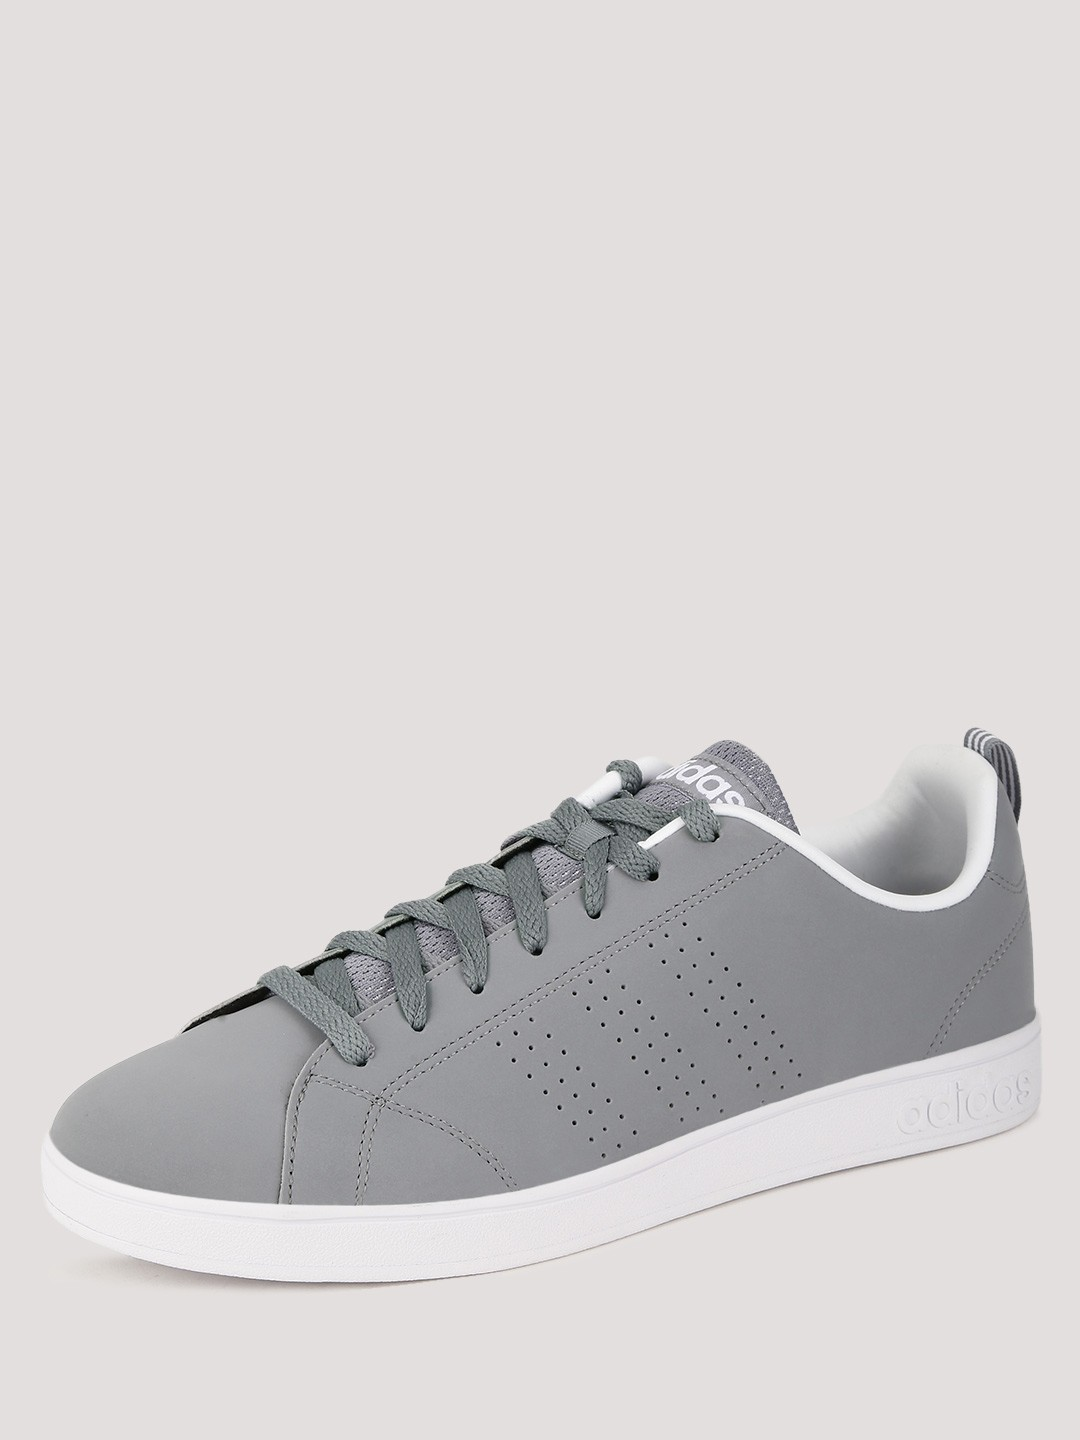 Vs Avantage Chaussures Type Chaussures Adidas Neo